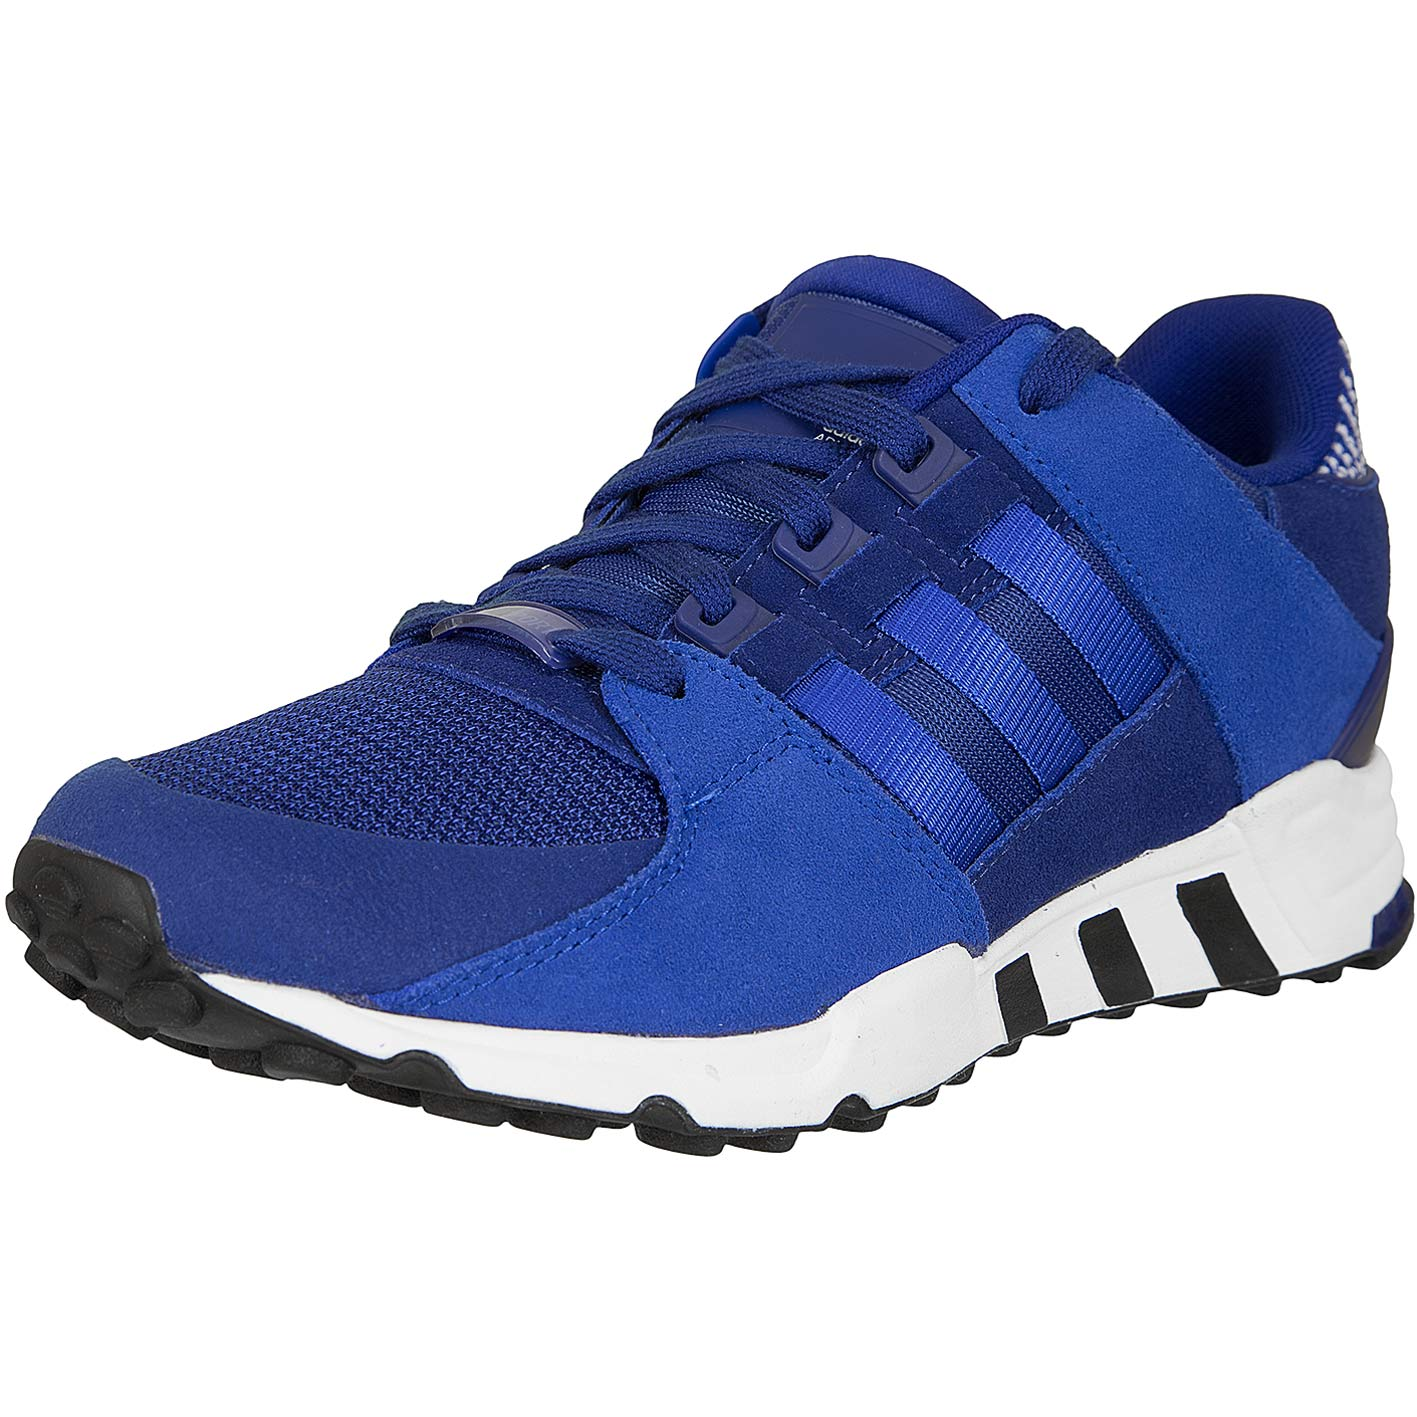 half off 70837 ee6d6 where can i buy adidas eqt support blau 0c04f a8c79